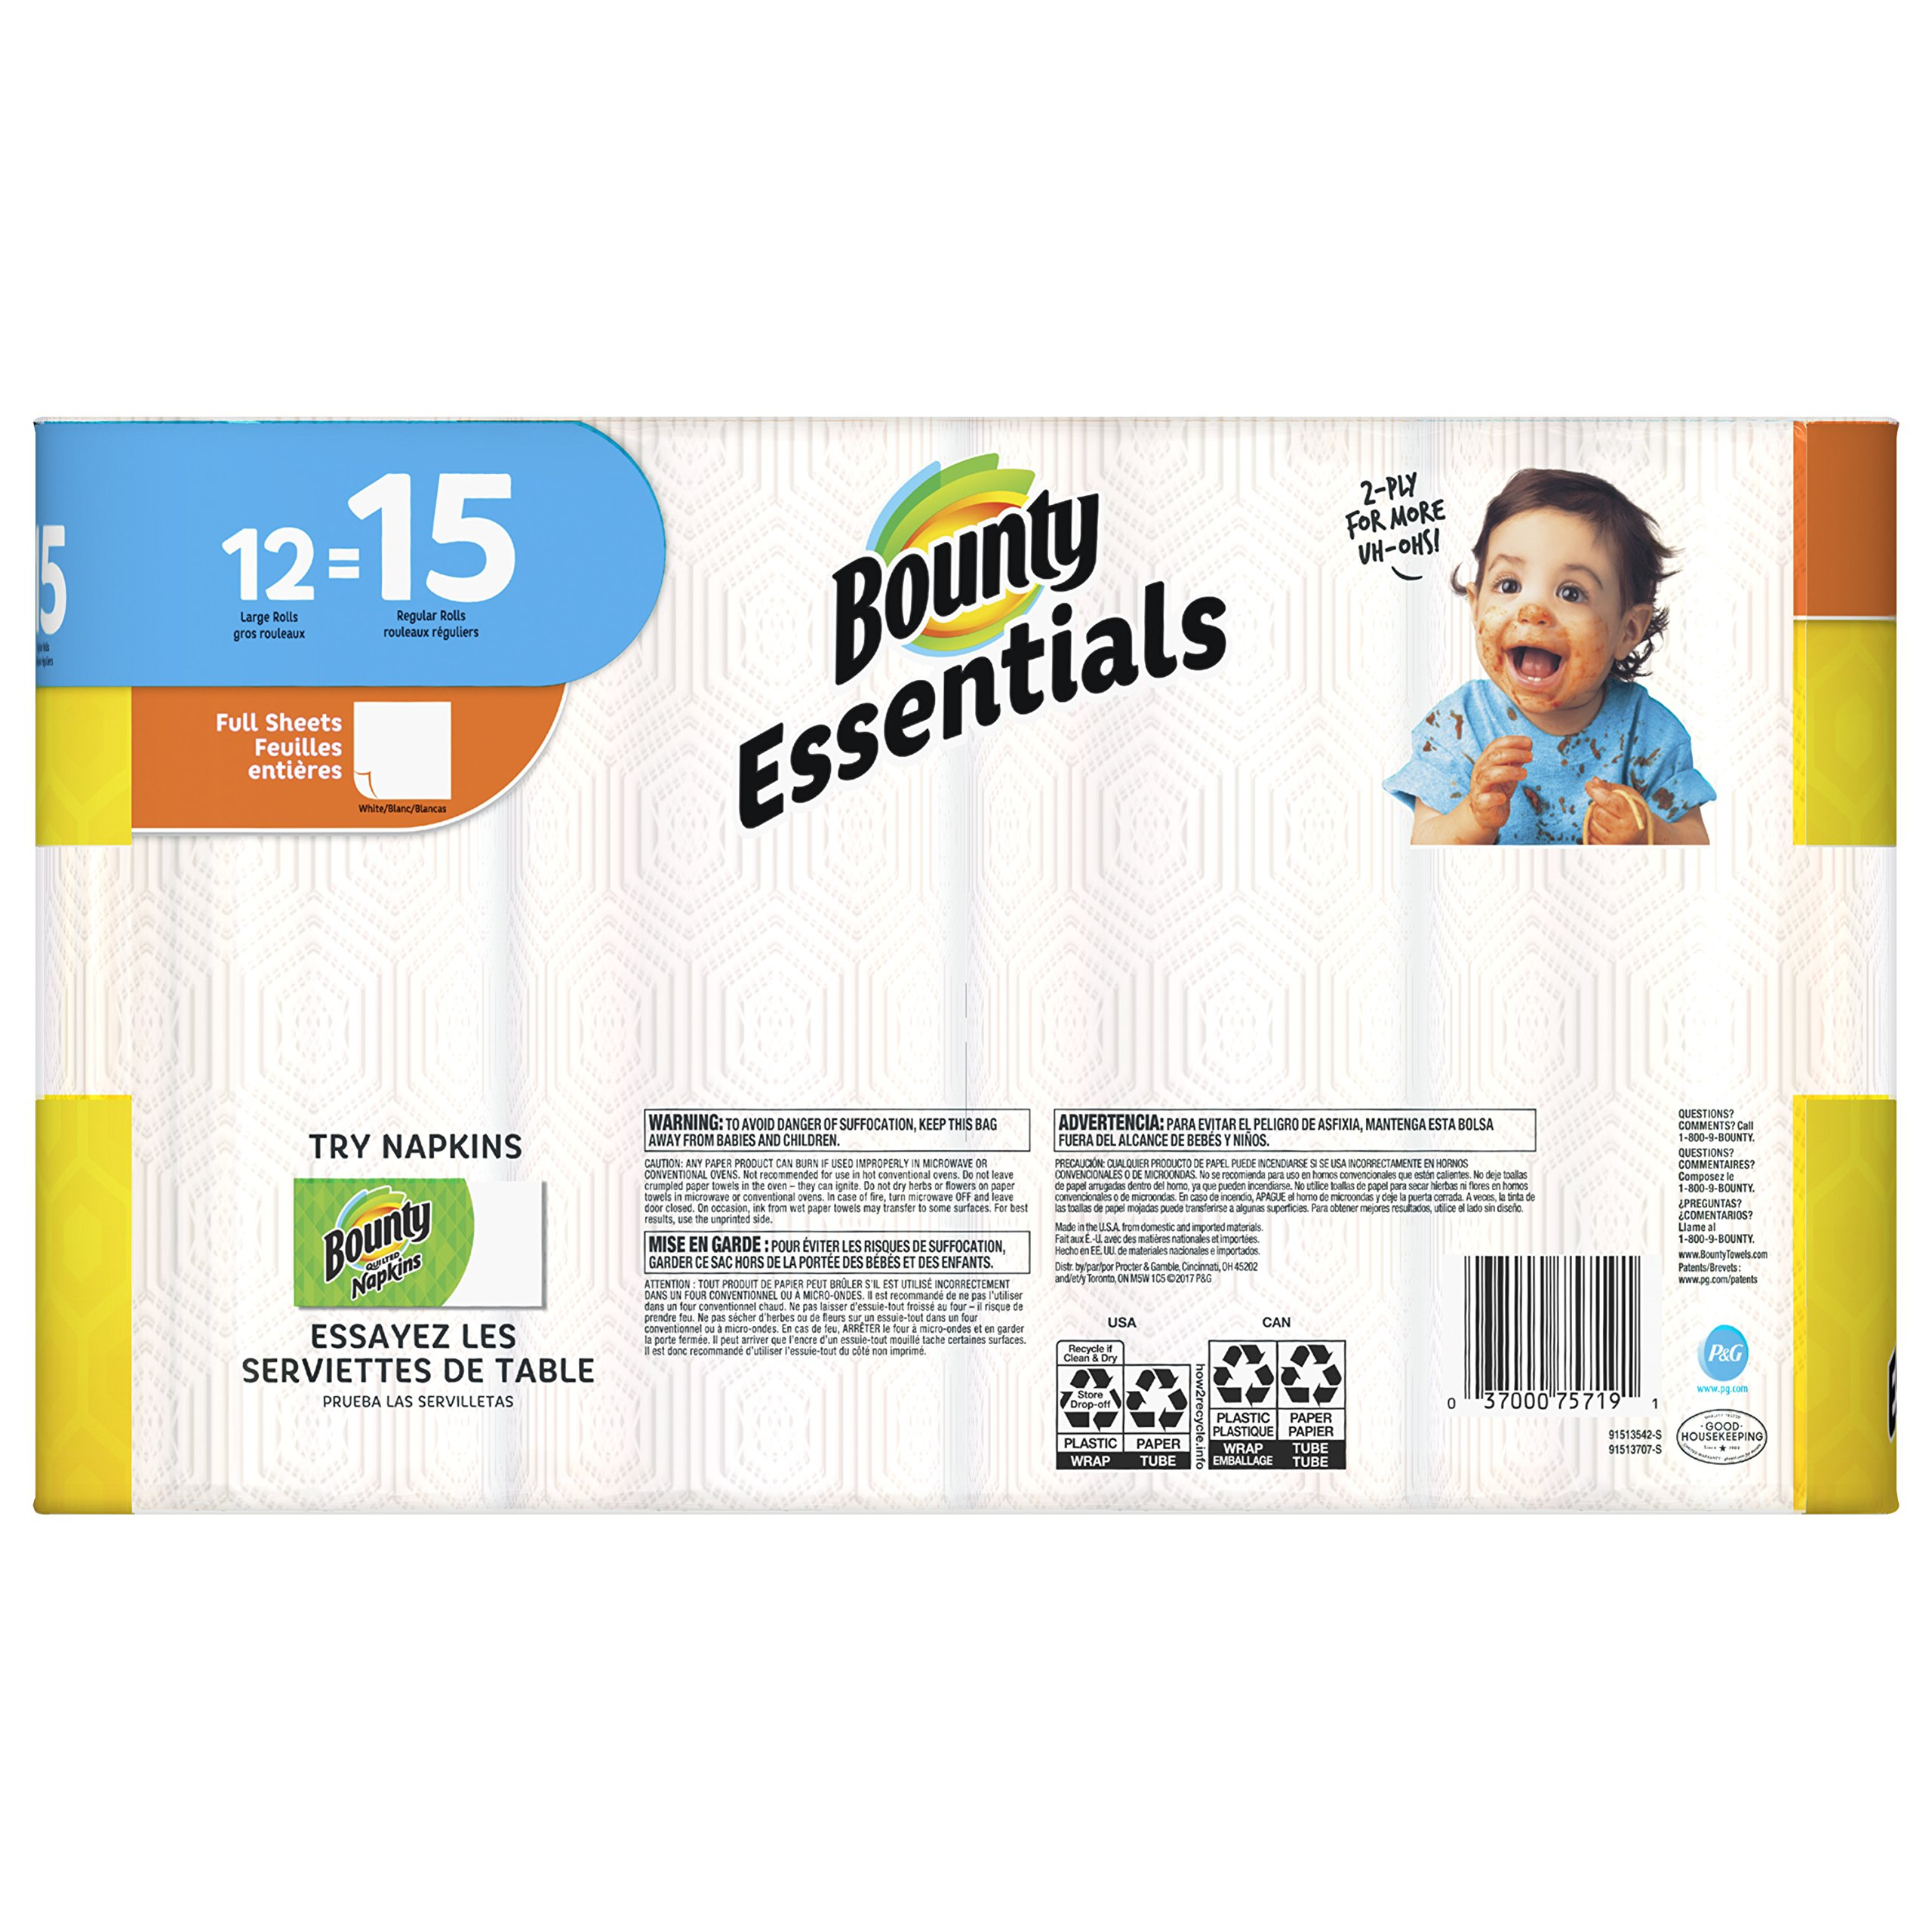 Bounty Full Sheet Paper Towels Giant Rolls: Bounty Essentials Full Sheet Paper Towels, 24 Large Rolls